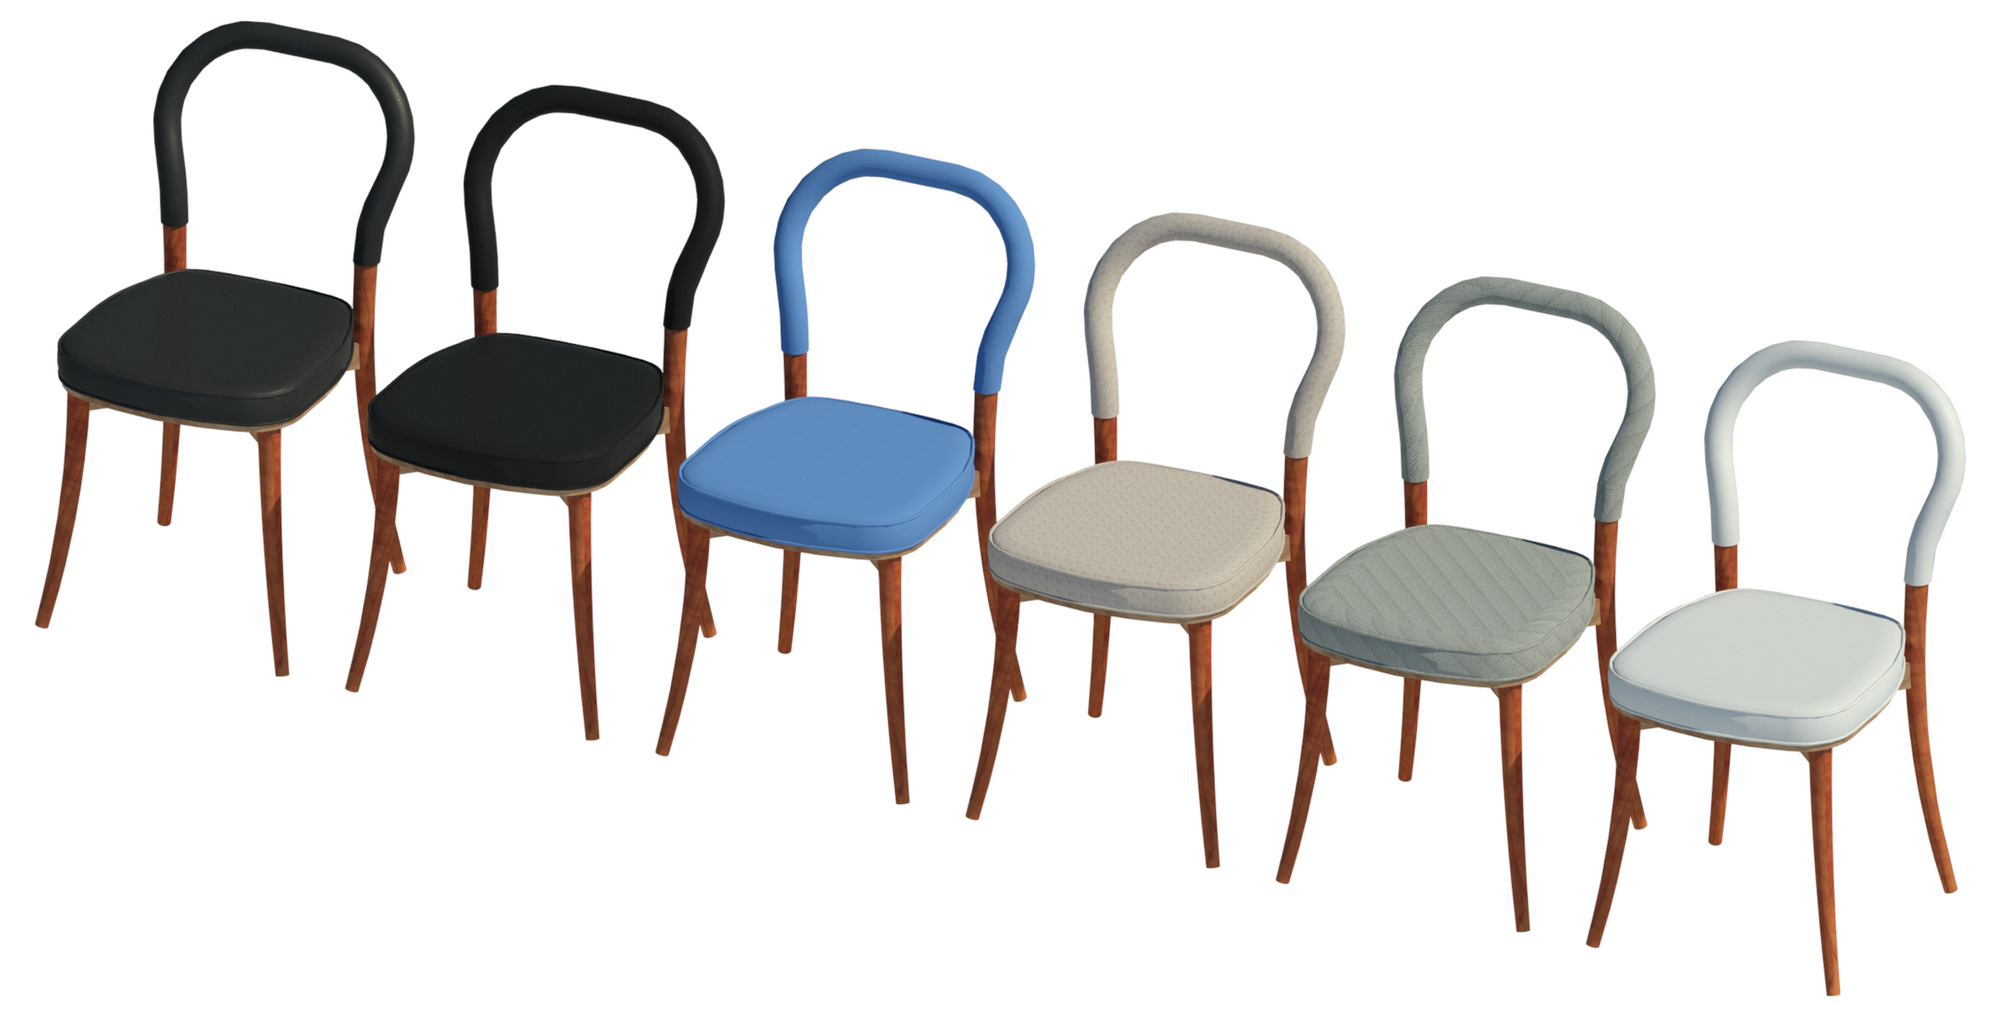 Revit family of the Göteborg Chair showing six upholstery finishes.